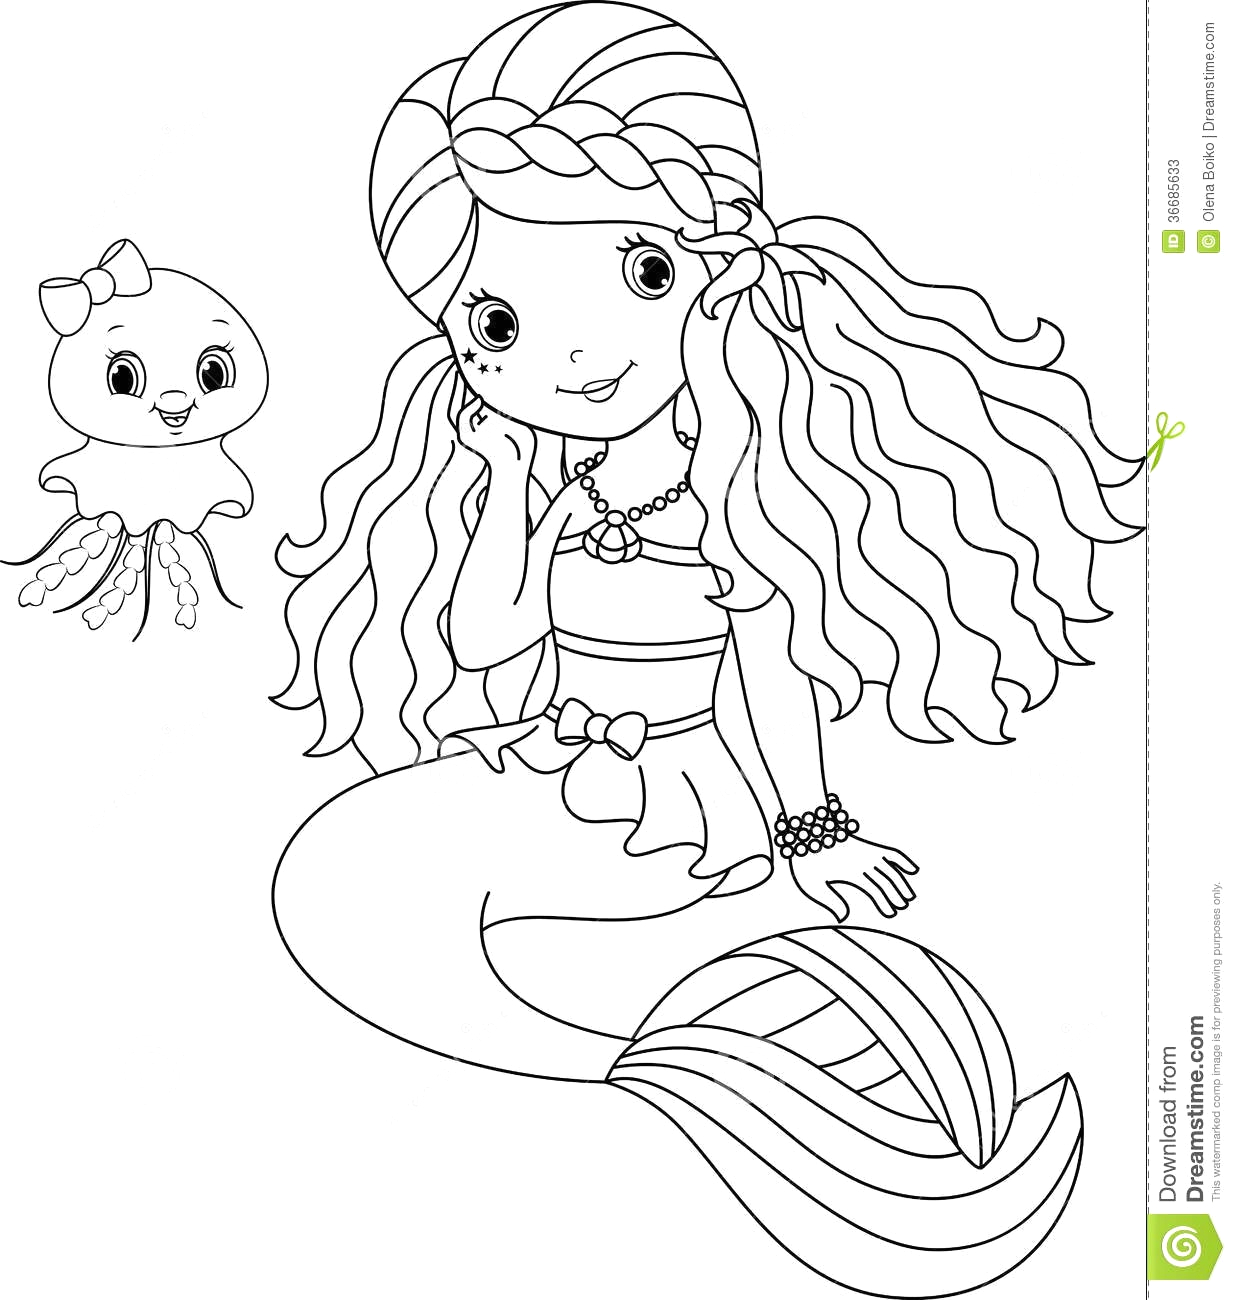 H2o Just Add Water Coloring Pages Free H2o Just Add Water Coloring Pages at Getcolorings